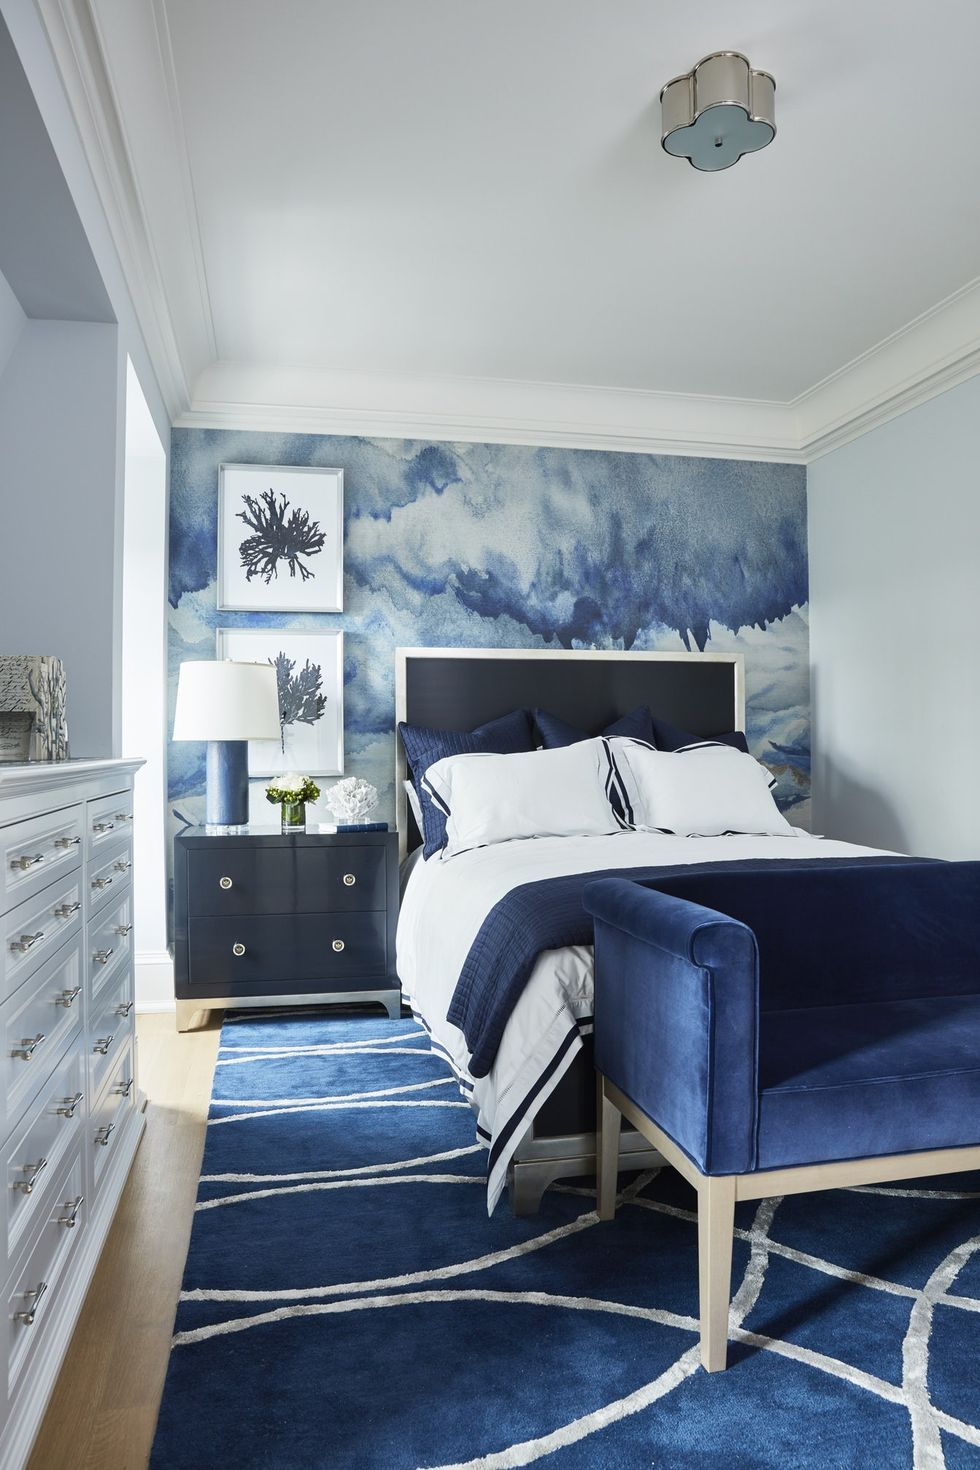 60 Stylish Blue Walls Ideas For Blue Painted Accent Walls Blue Bedroom Decor Blue Accent Walls Blue Bedroom Bedroom wallpaper ideas navy